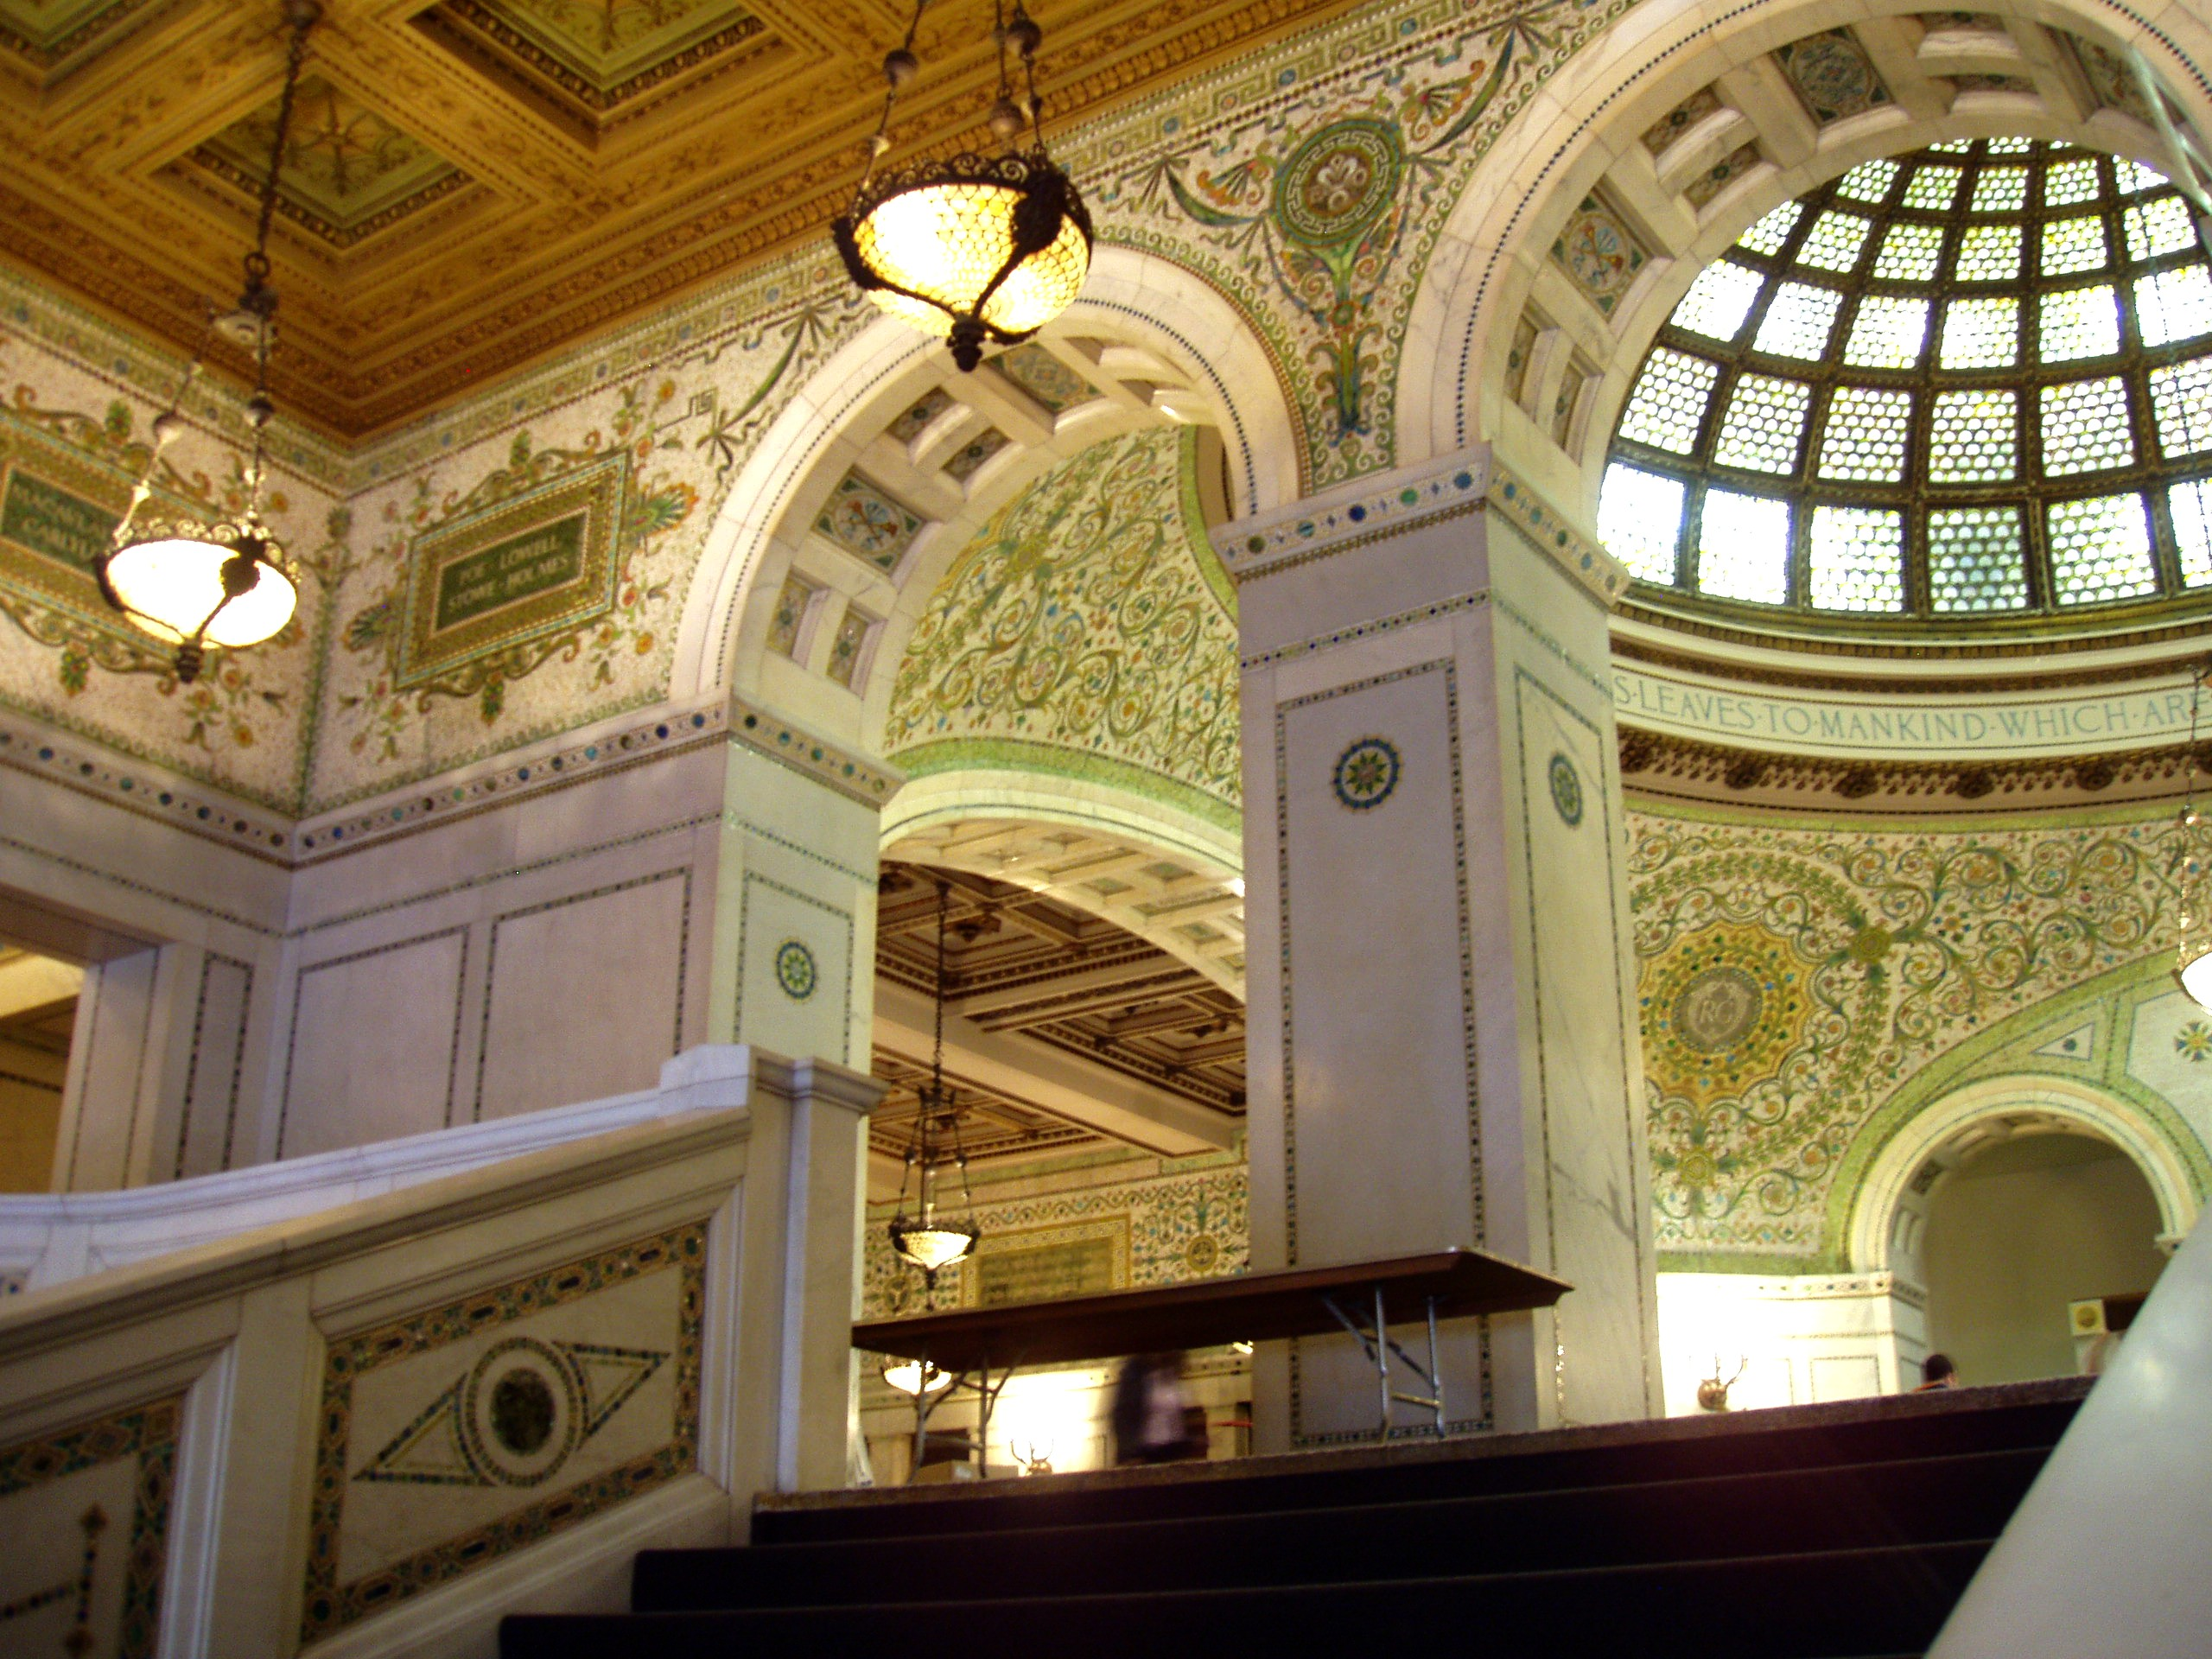 Download this File Chicago Cultural Center Grand Staircase And Preston Bradley picture